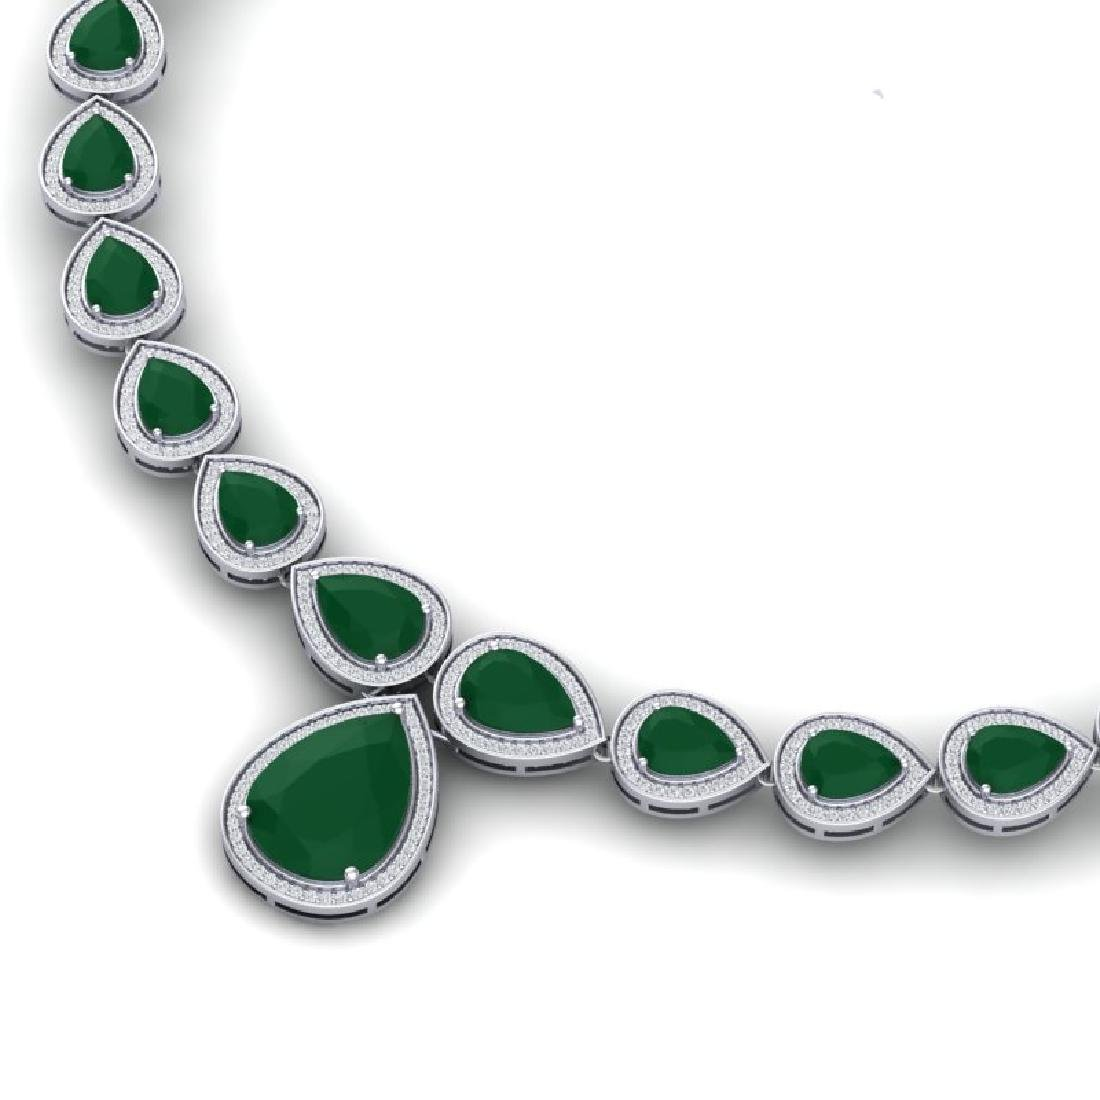 51.41 CTW Royalty Emerald & VS Diamond Necklace 18K - 2